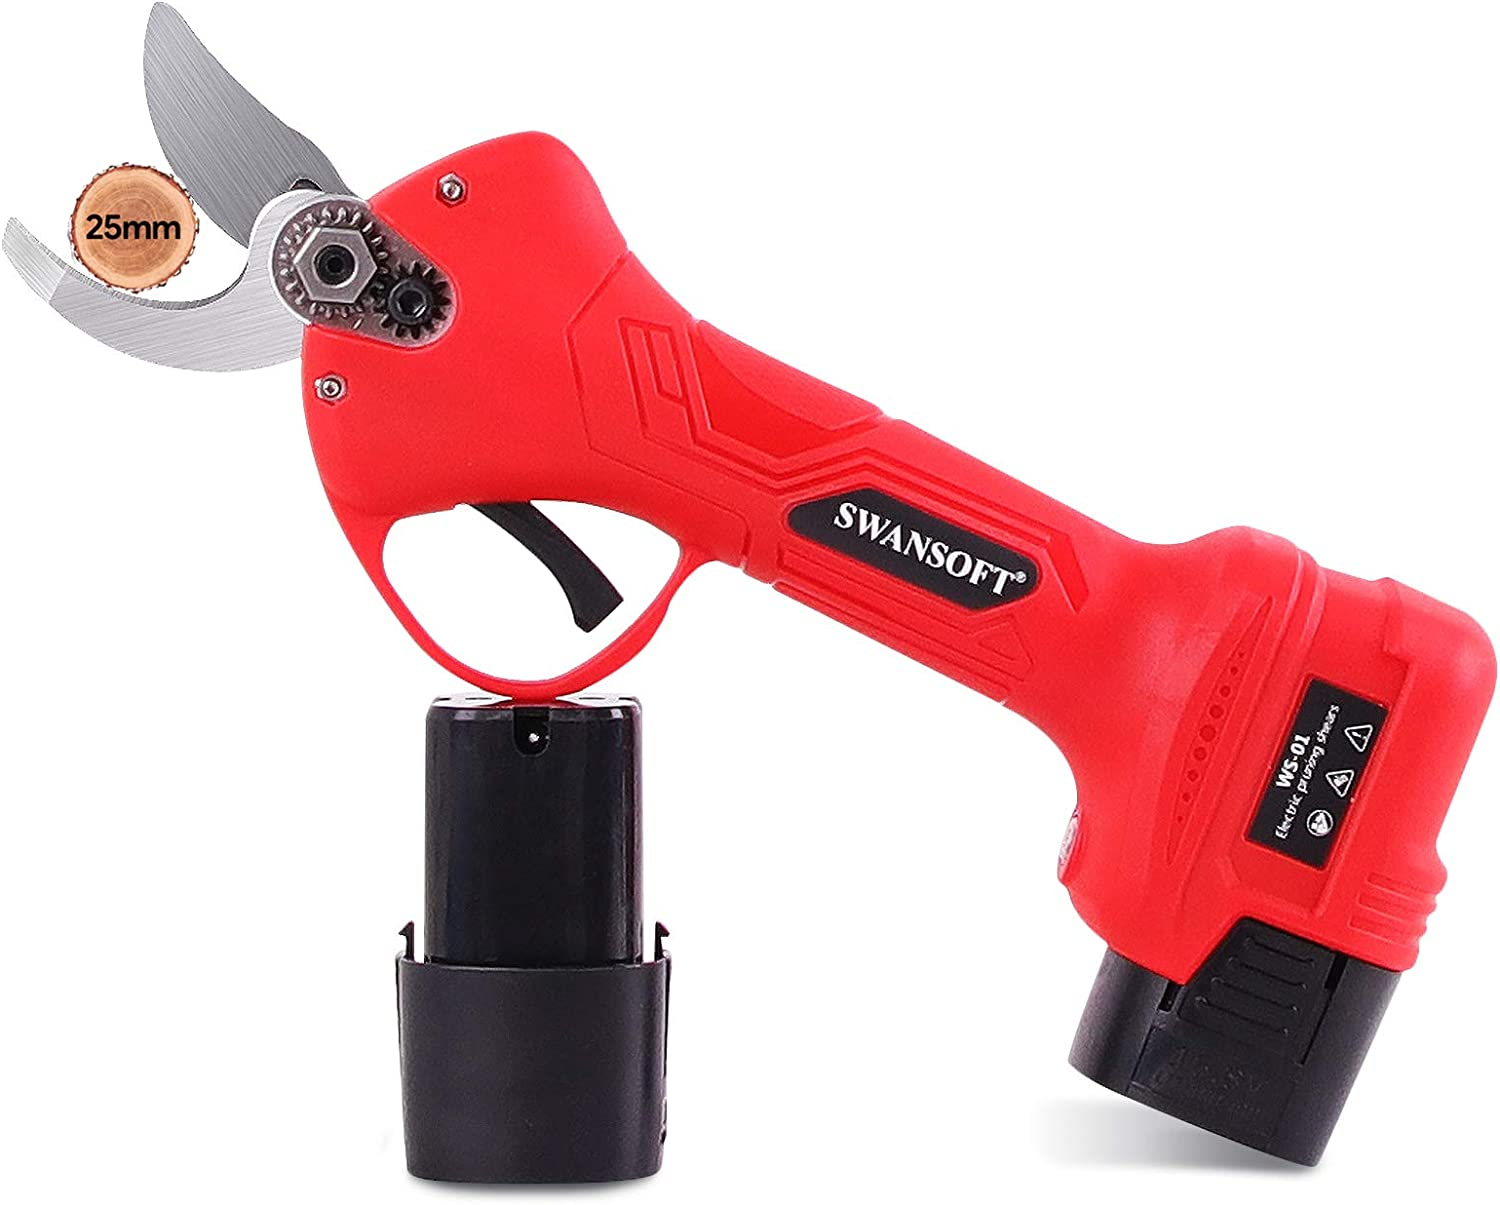 SWANSOFT Electric Pruning Shears with 1 Inch Cutting Diameter, Cordless Garden Pruning Shears, Professional Electric Pruner with 2 Ah Rechargeable Battery